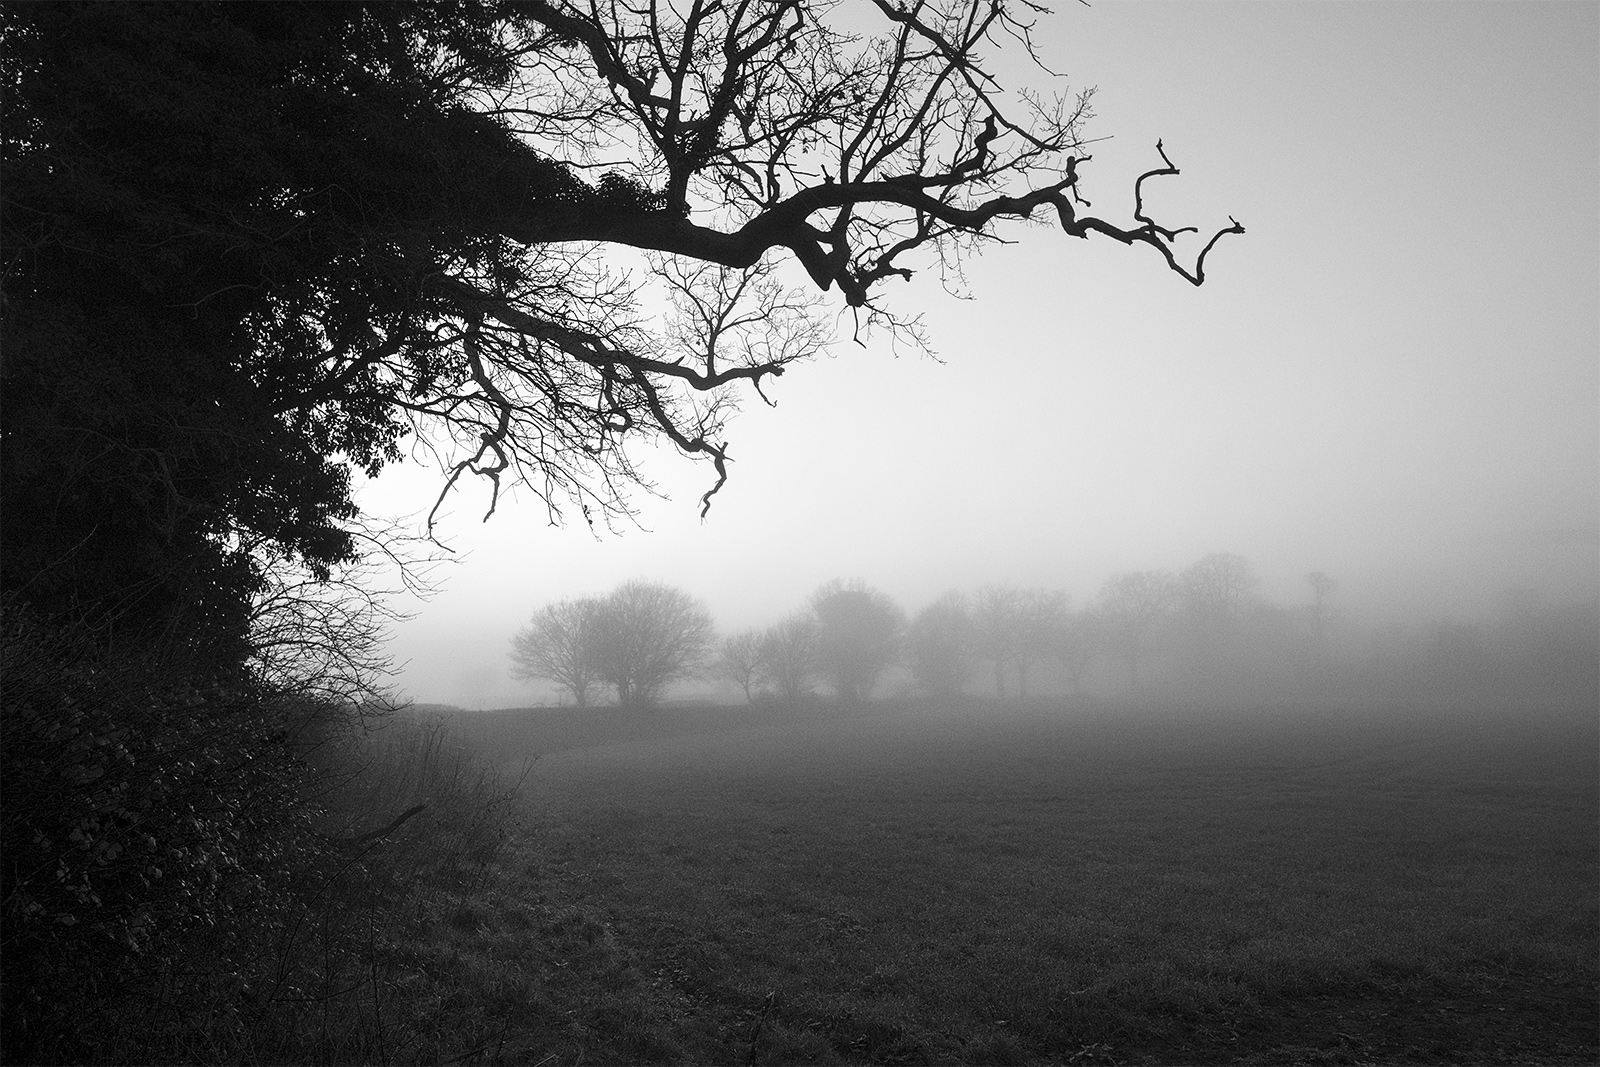 Twisted tree branches reaching out from hedge at edge of foggy field with trees in distant mist Stratfield Mortimer Berkshire UK black and white landscape composition nature rural countryside documentary photograph ©P. Maton 2018 eyeteeth.net